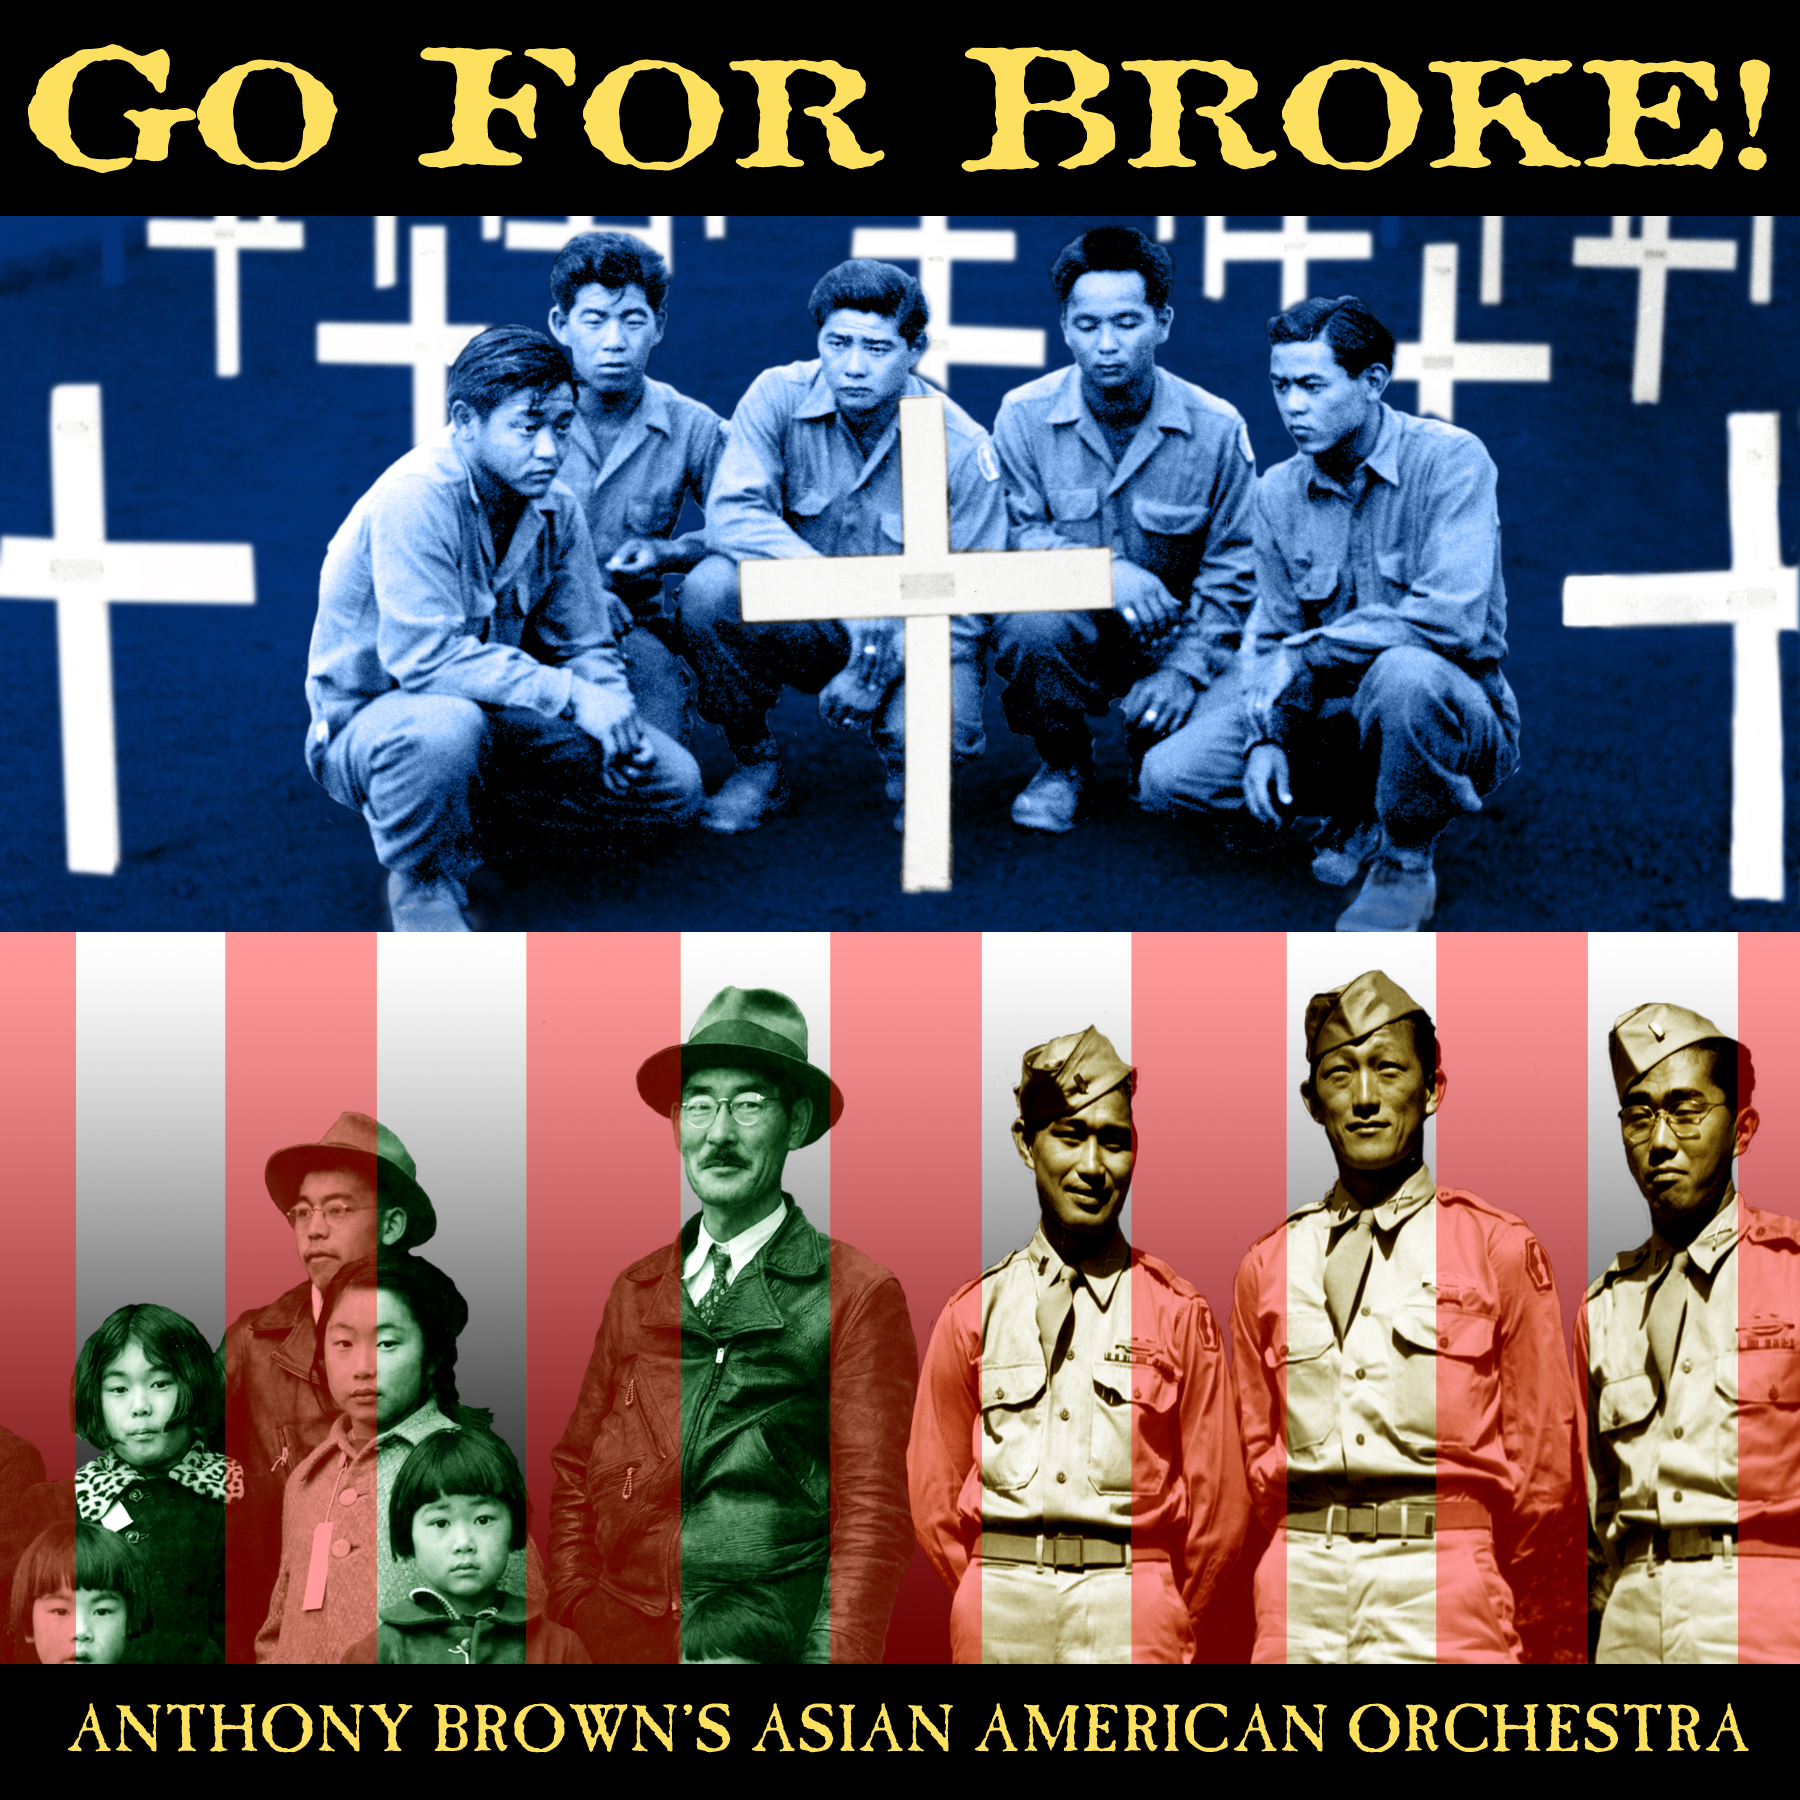 Go For Broke!A Salute to Nisei Veterans - The latest CD by the Asian American Orchestra is dedicated to the courageous Nisei (